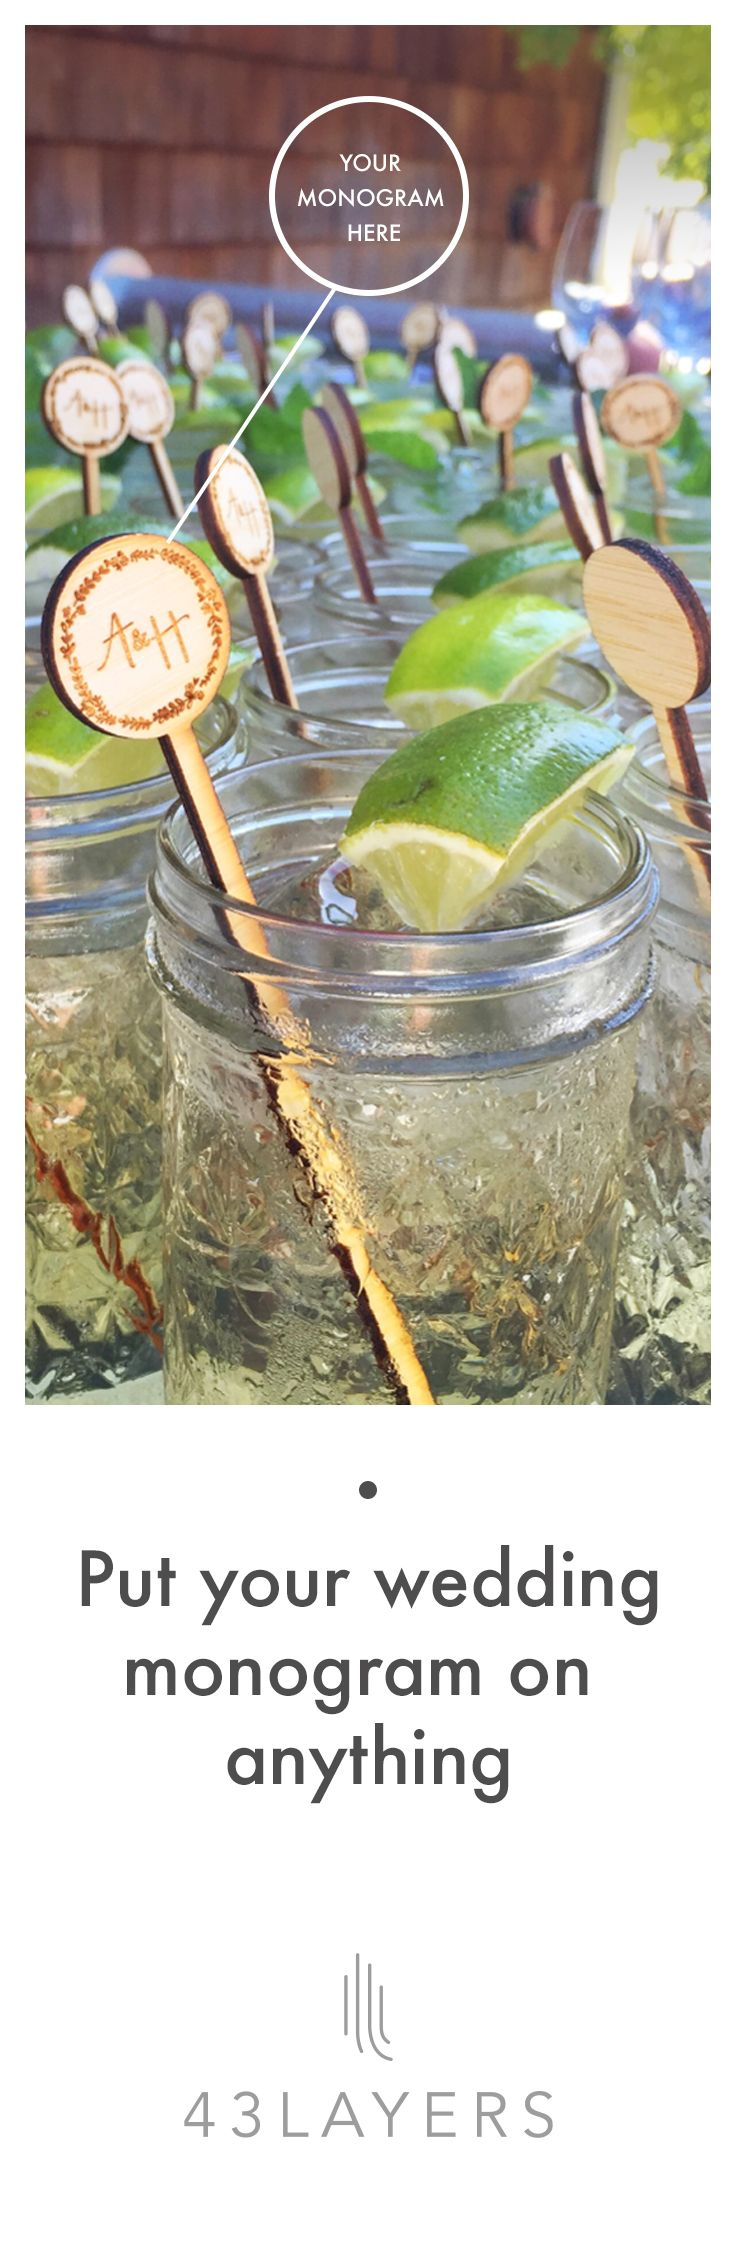 Help them remember why they're drinking . 43Layers can make stir sticks with your monogram, or cake toppers of your pet, or table centerpieces shaped like the stilettos that changed his life, or... anything else, really. It's your special day, after all  Centerpieces * Table Numbers * Stir Sticks * Escort Cards * Cake Toppers * Hashtag Signs * Anything You Dream.